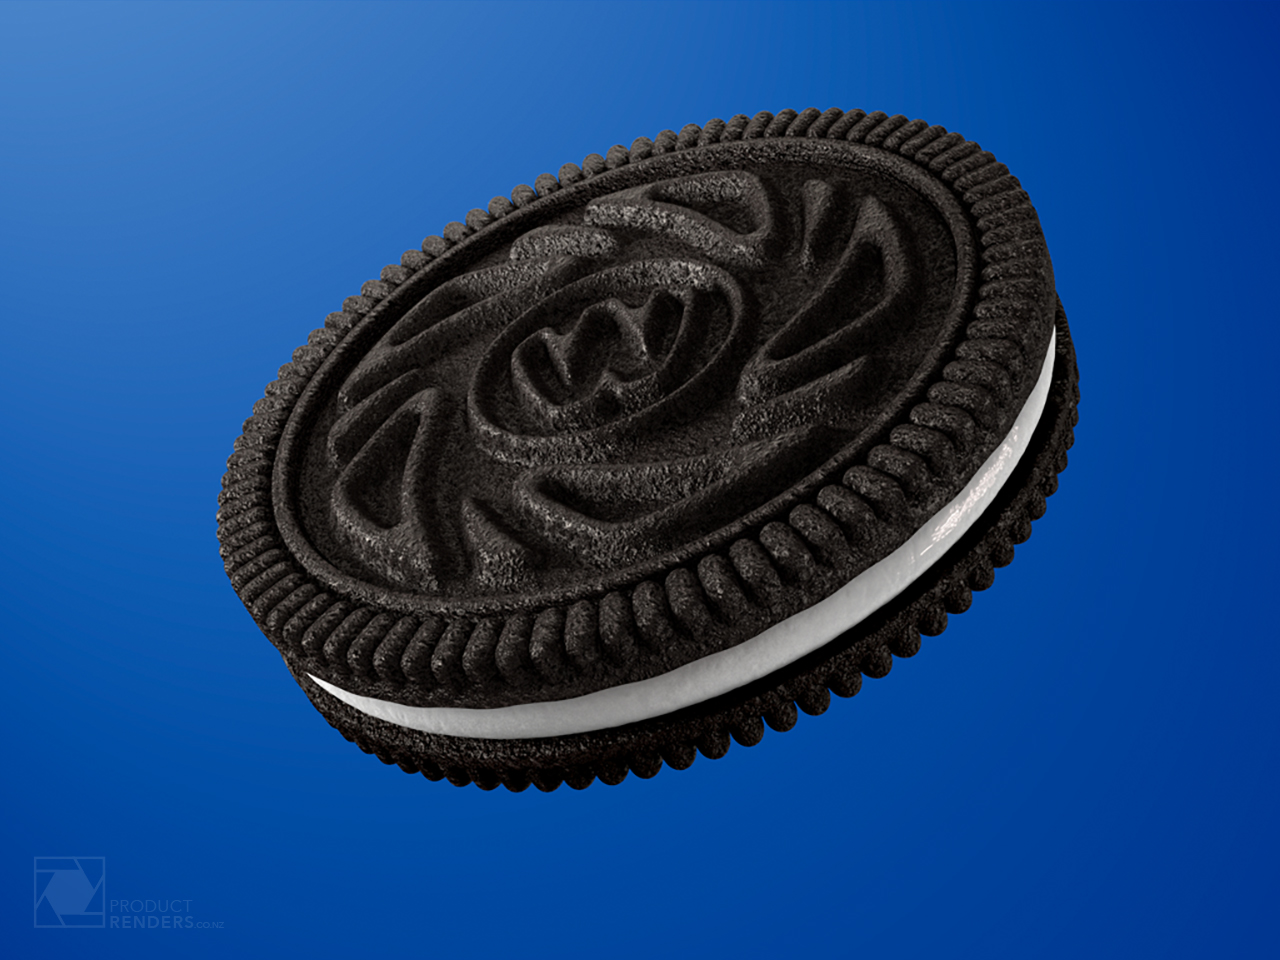 3D render of a single Wheelies biscuit for use on there new packaging range